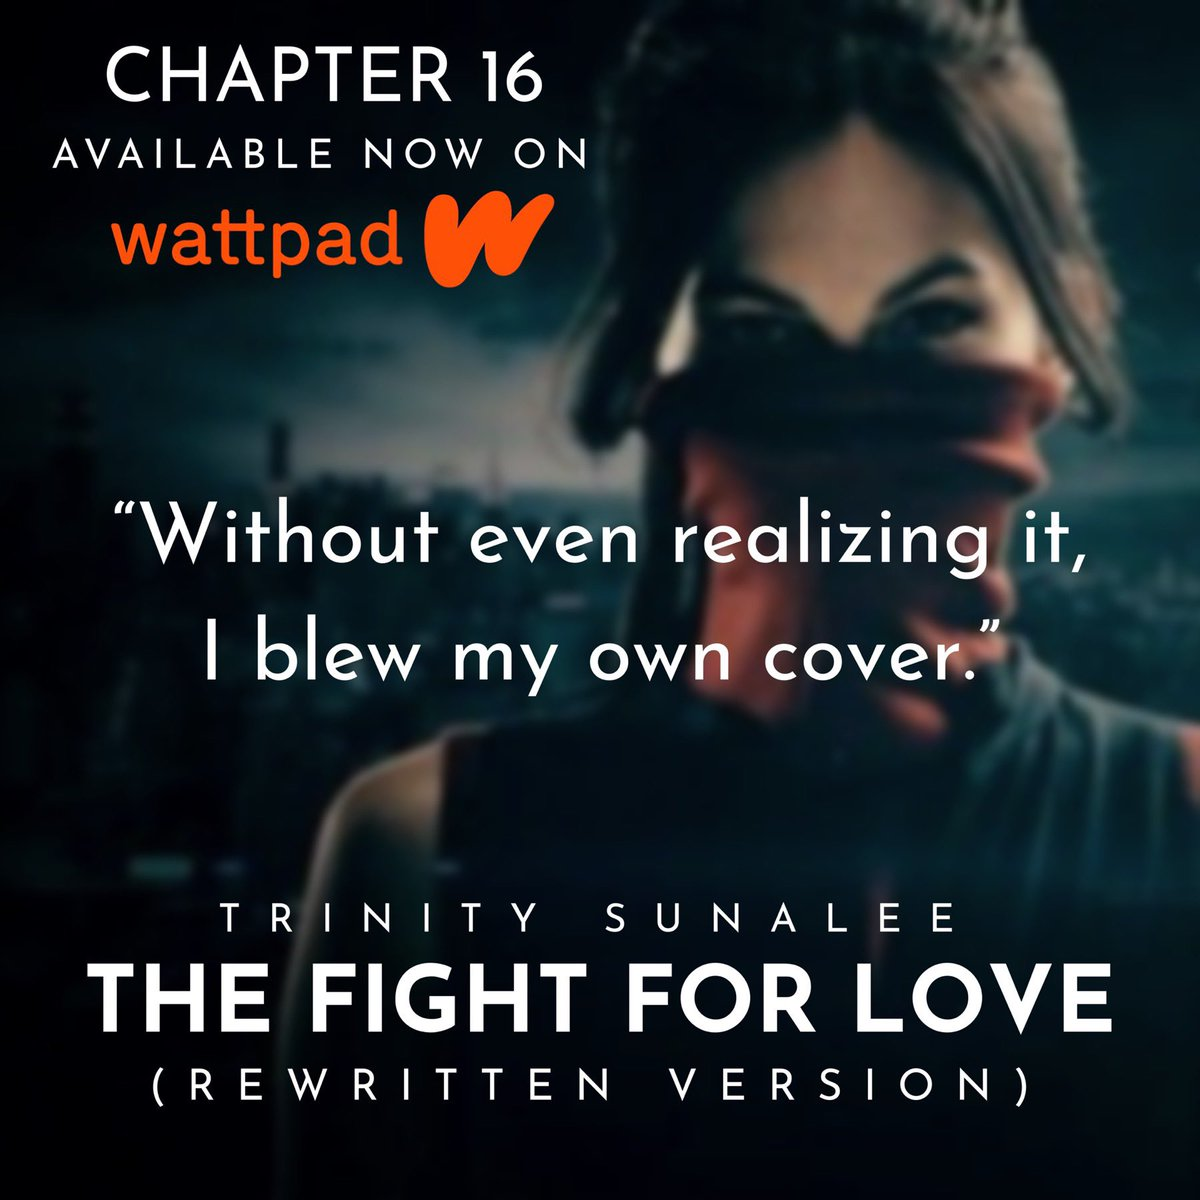 How To Read On Wattpad Without Signing Up